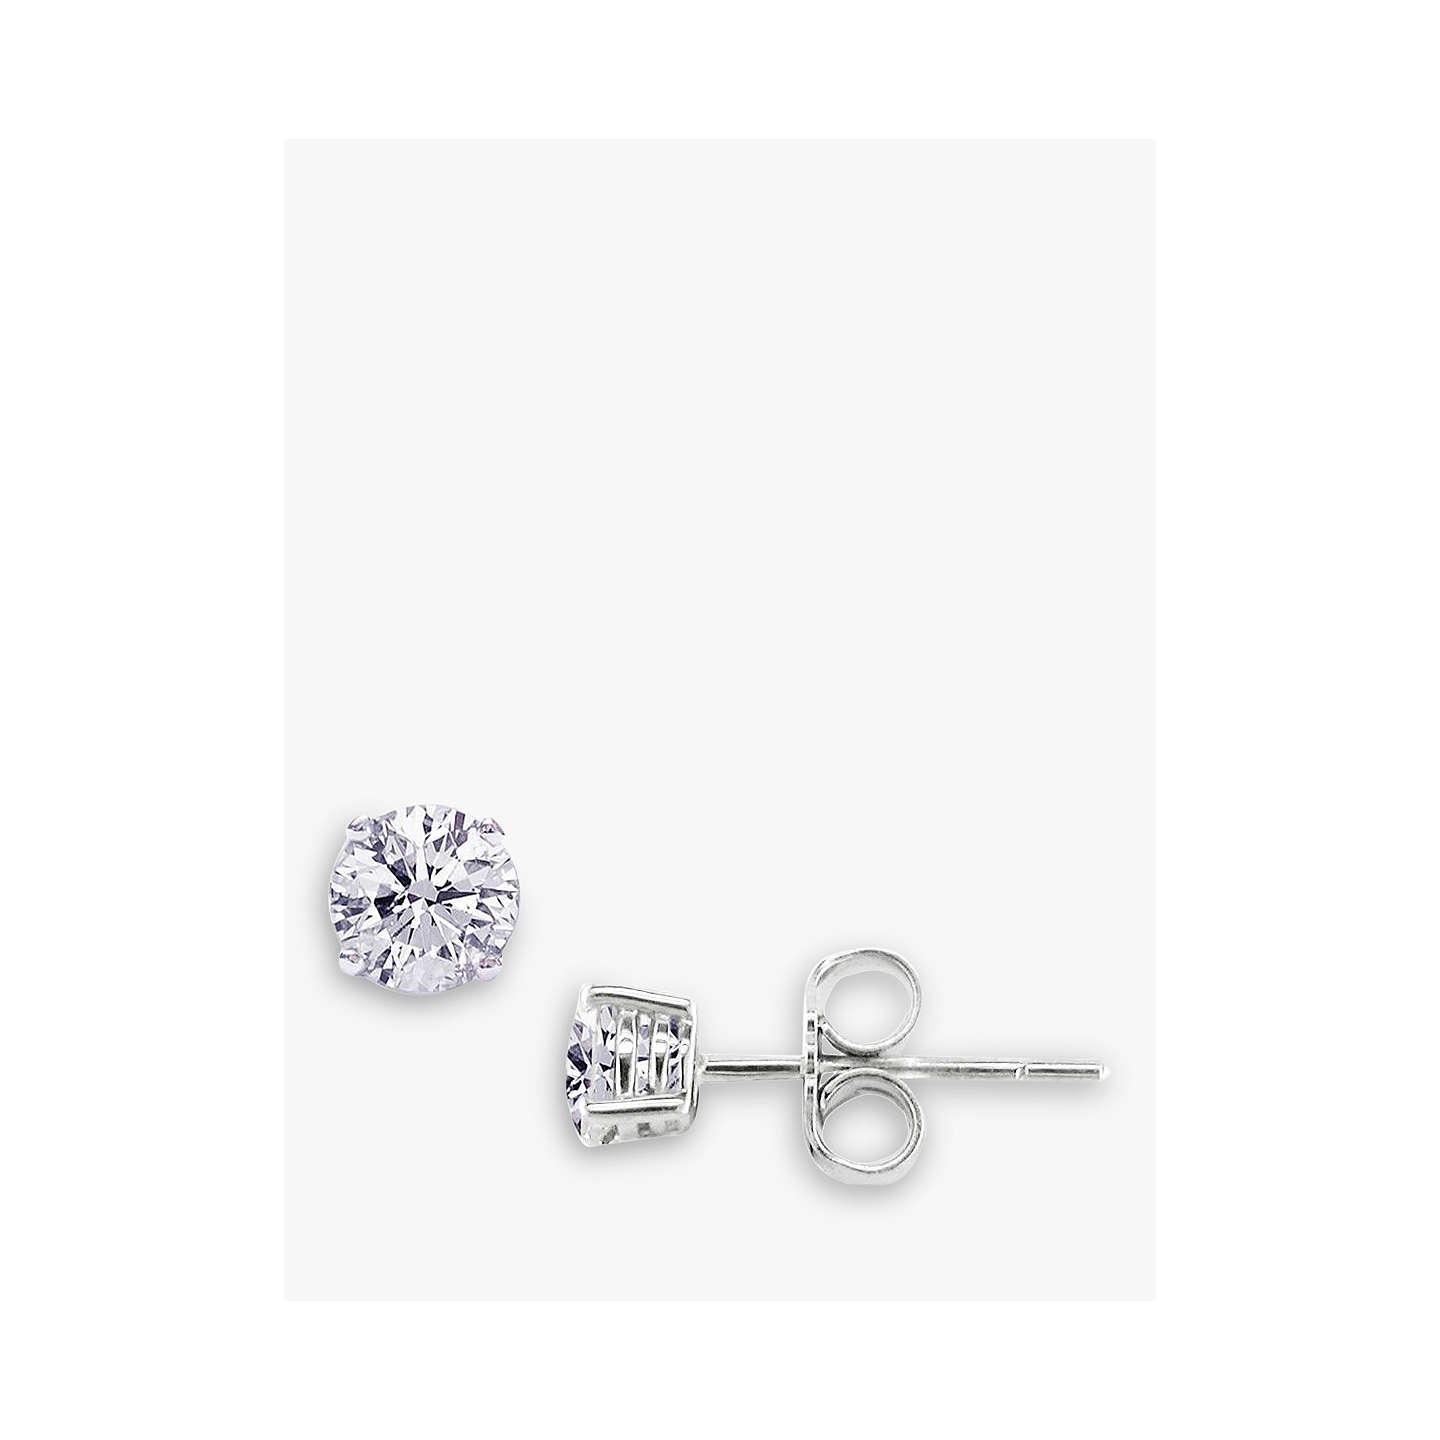 BuyEWA 18ct White Gold 0.80ct Diamond 4 Claw Stud Earrings, White Gold Online at johnlewis.com